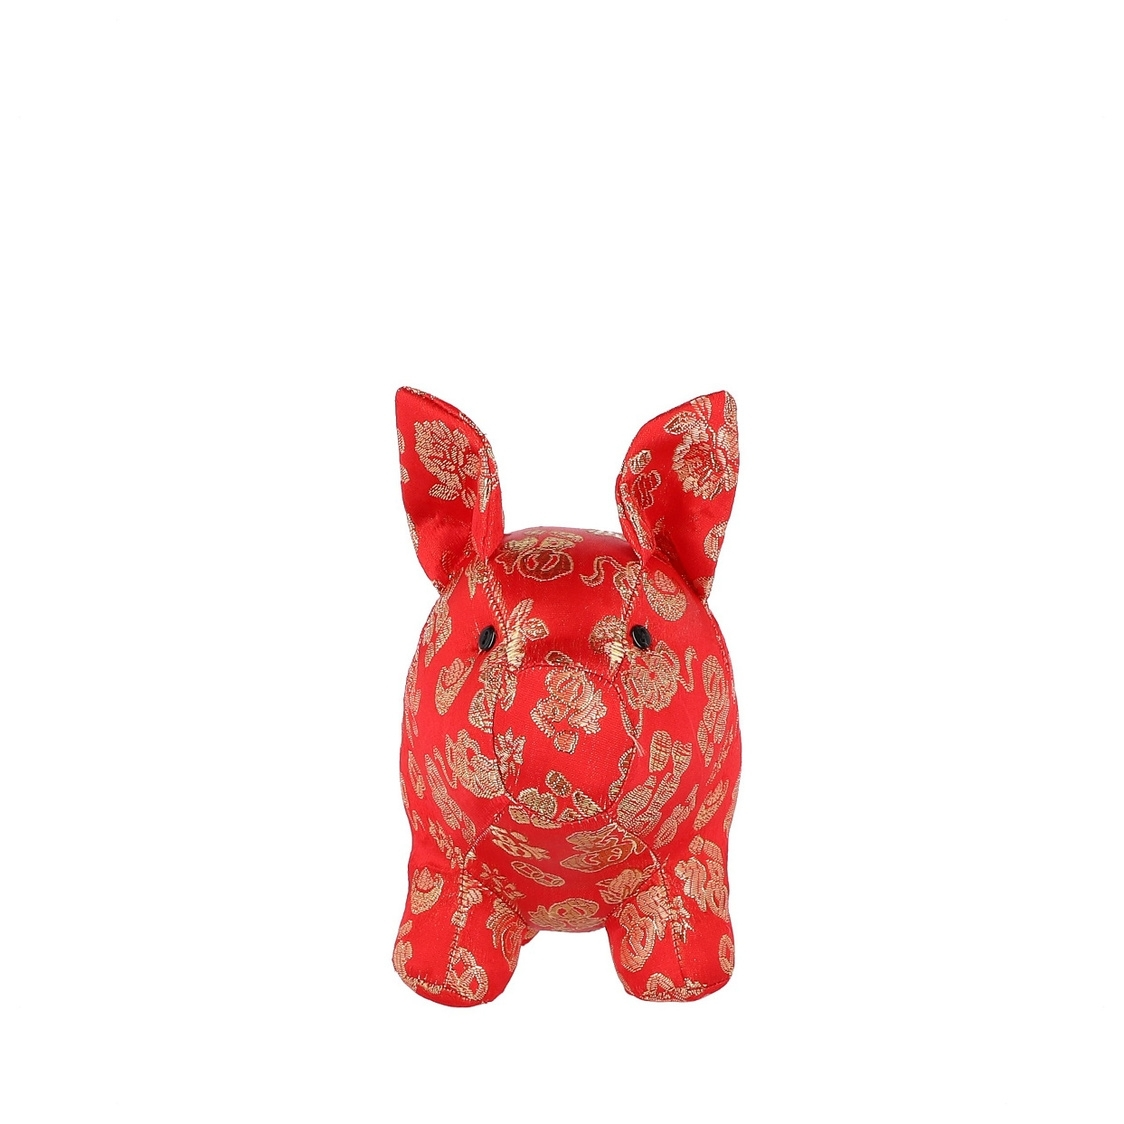 Mascot Pig Decoration in Red with Gold Threads